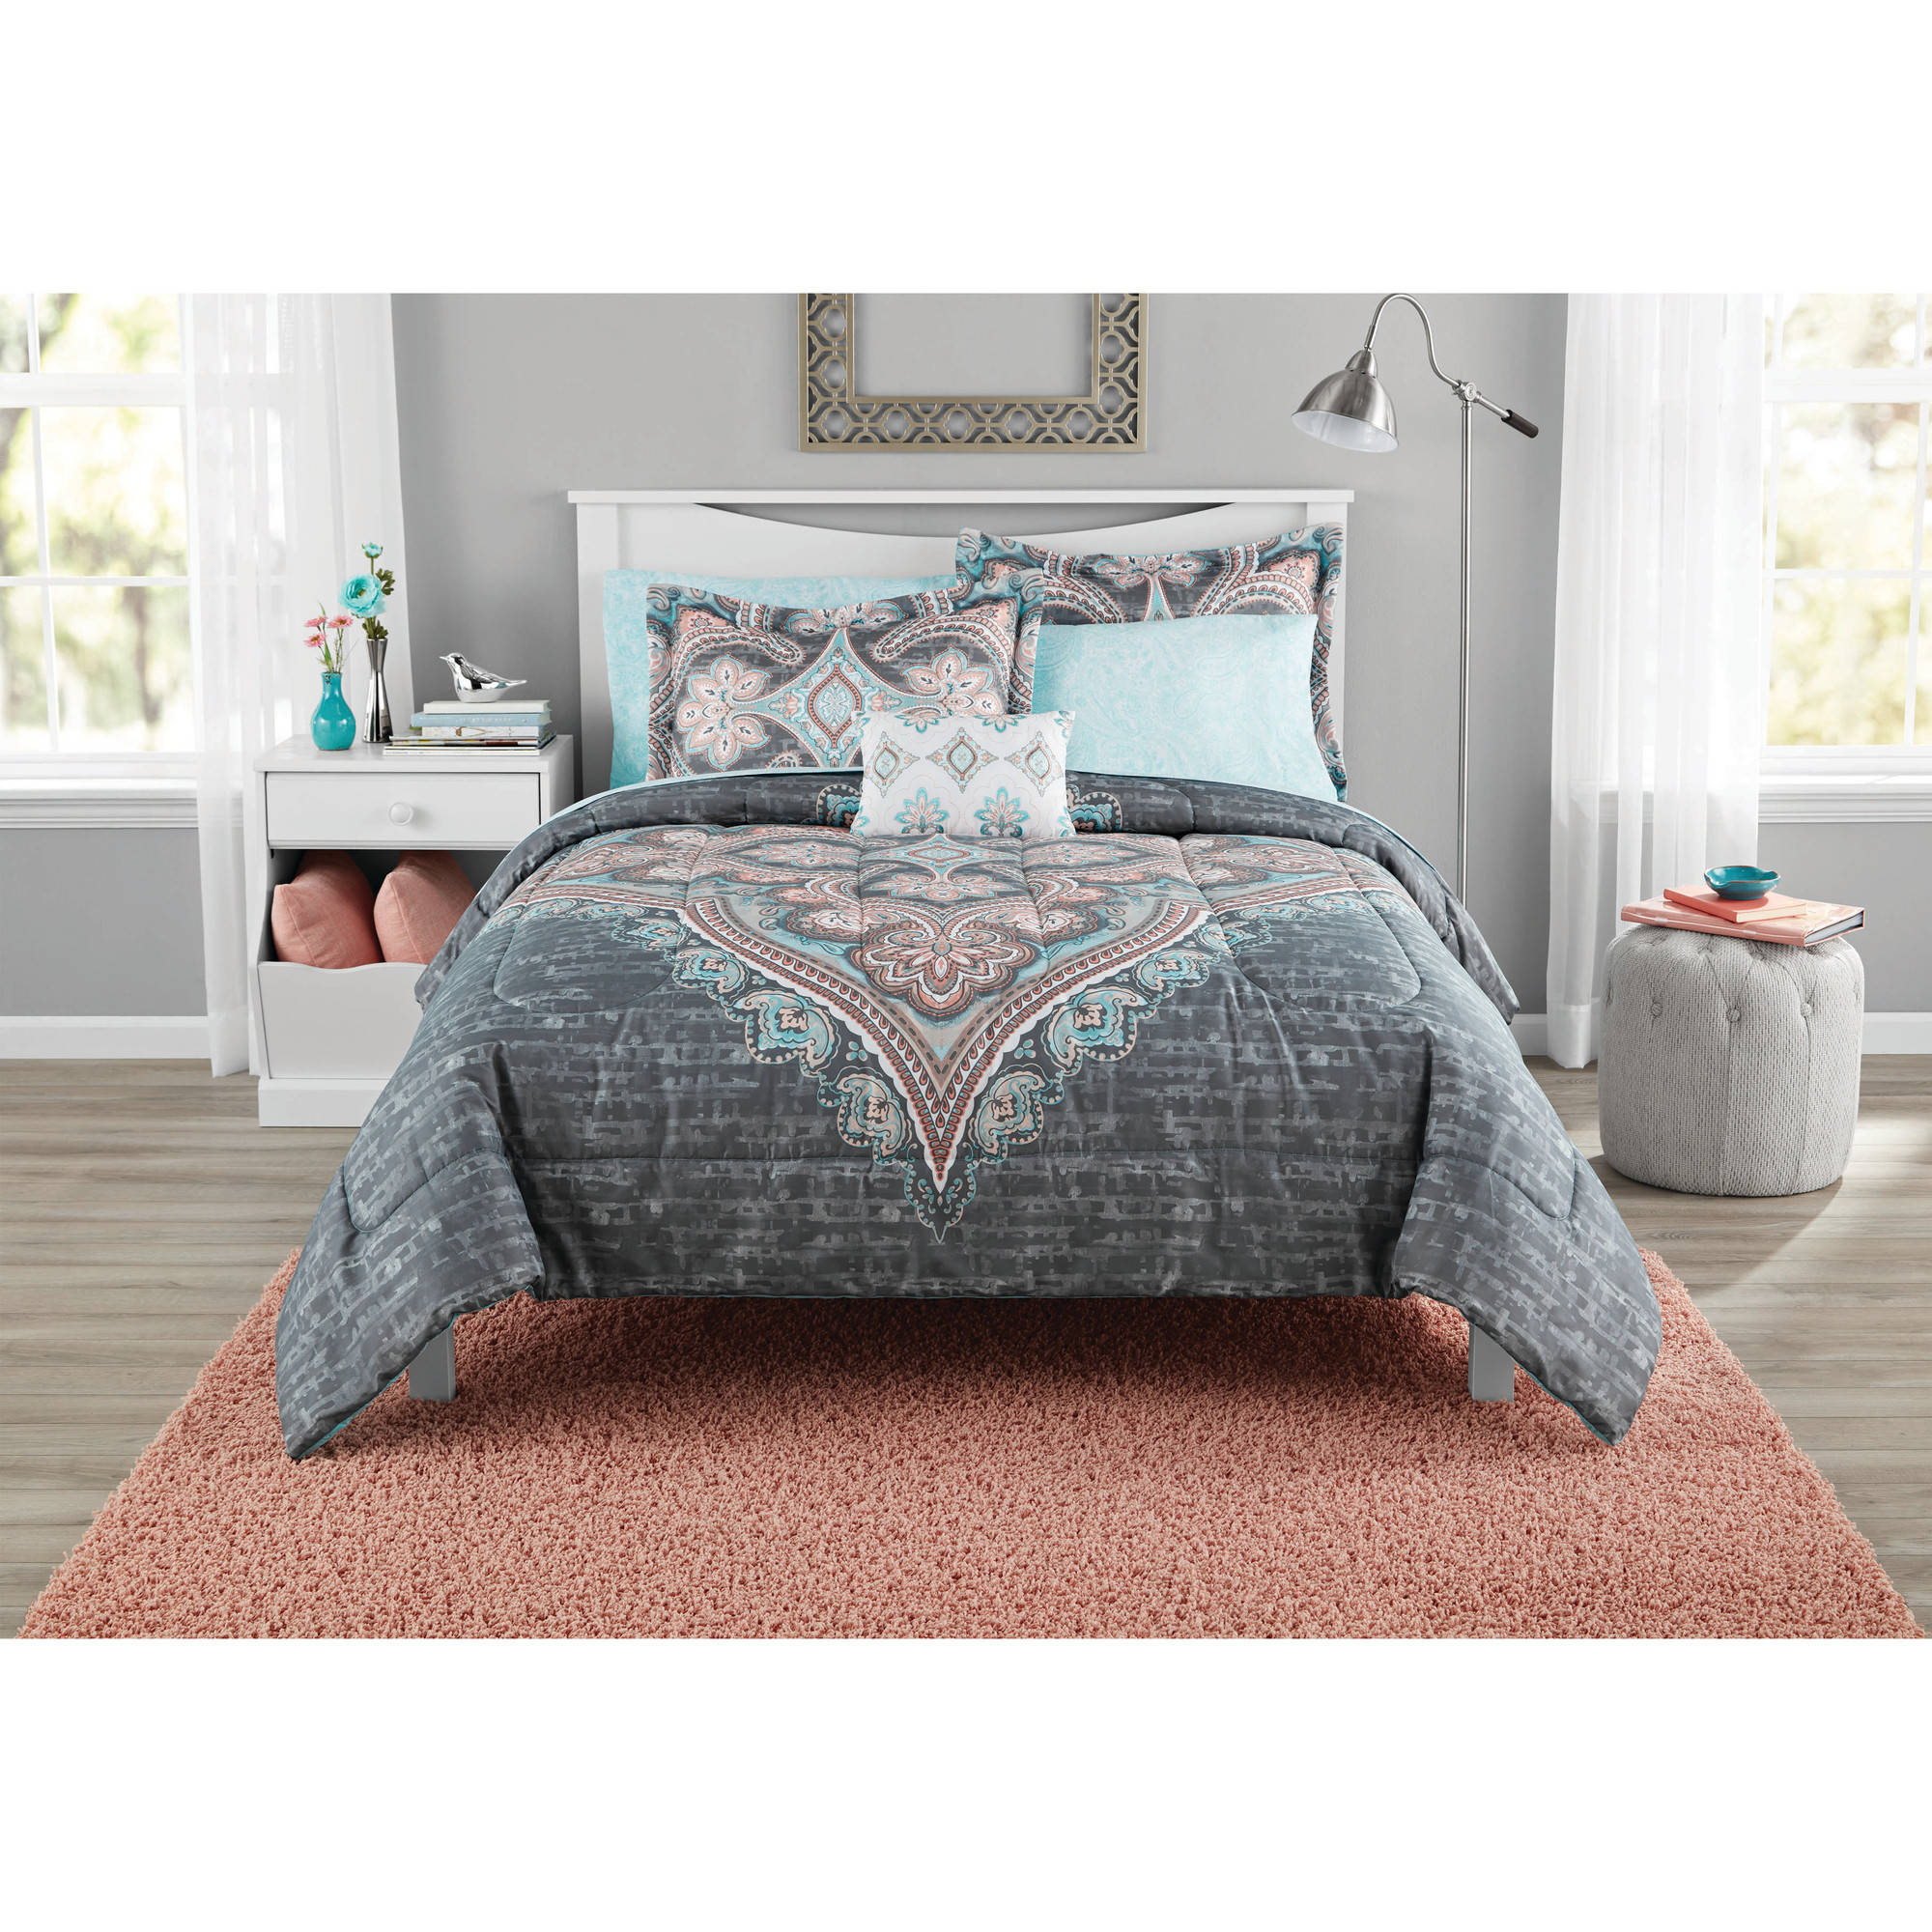 Mainstays Bed in a Bag Global Diamond Comforter Set